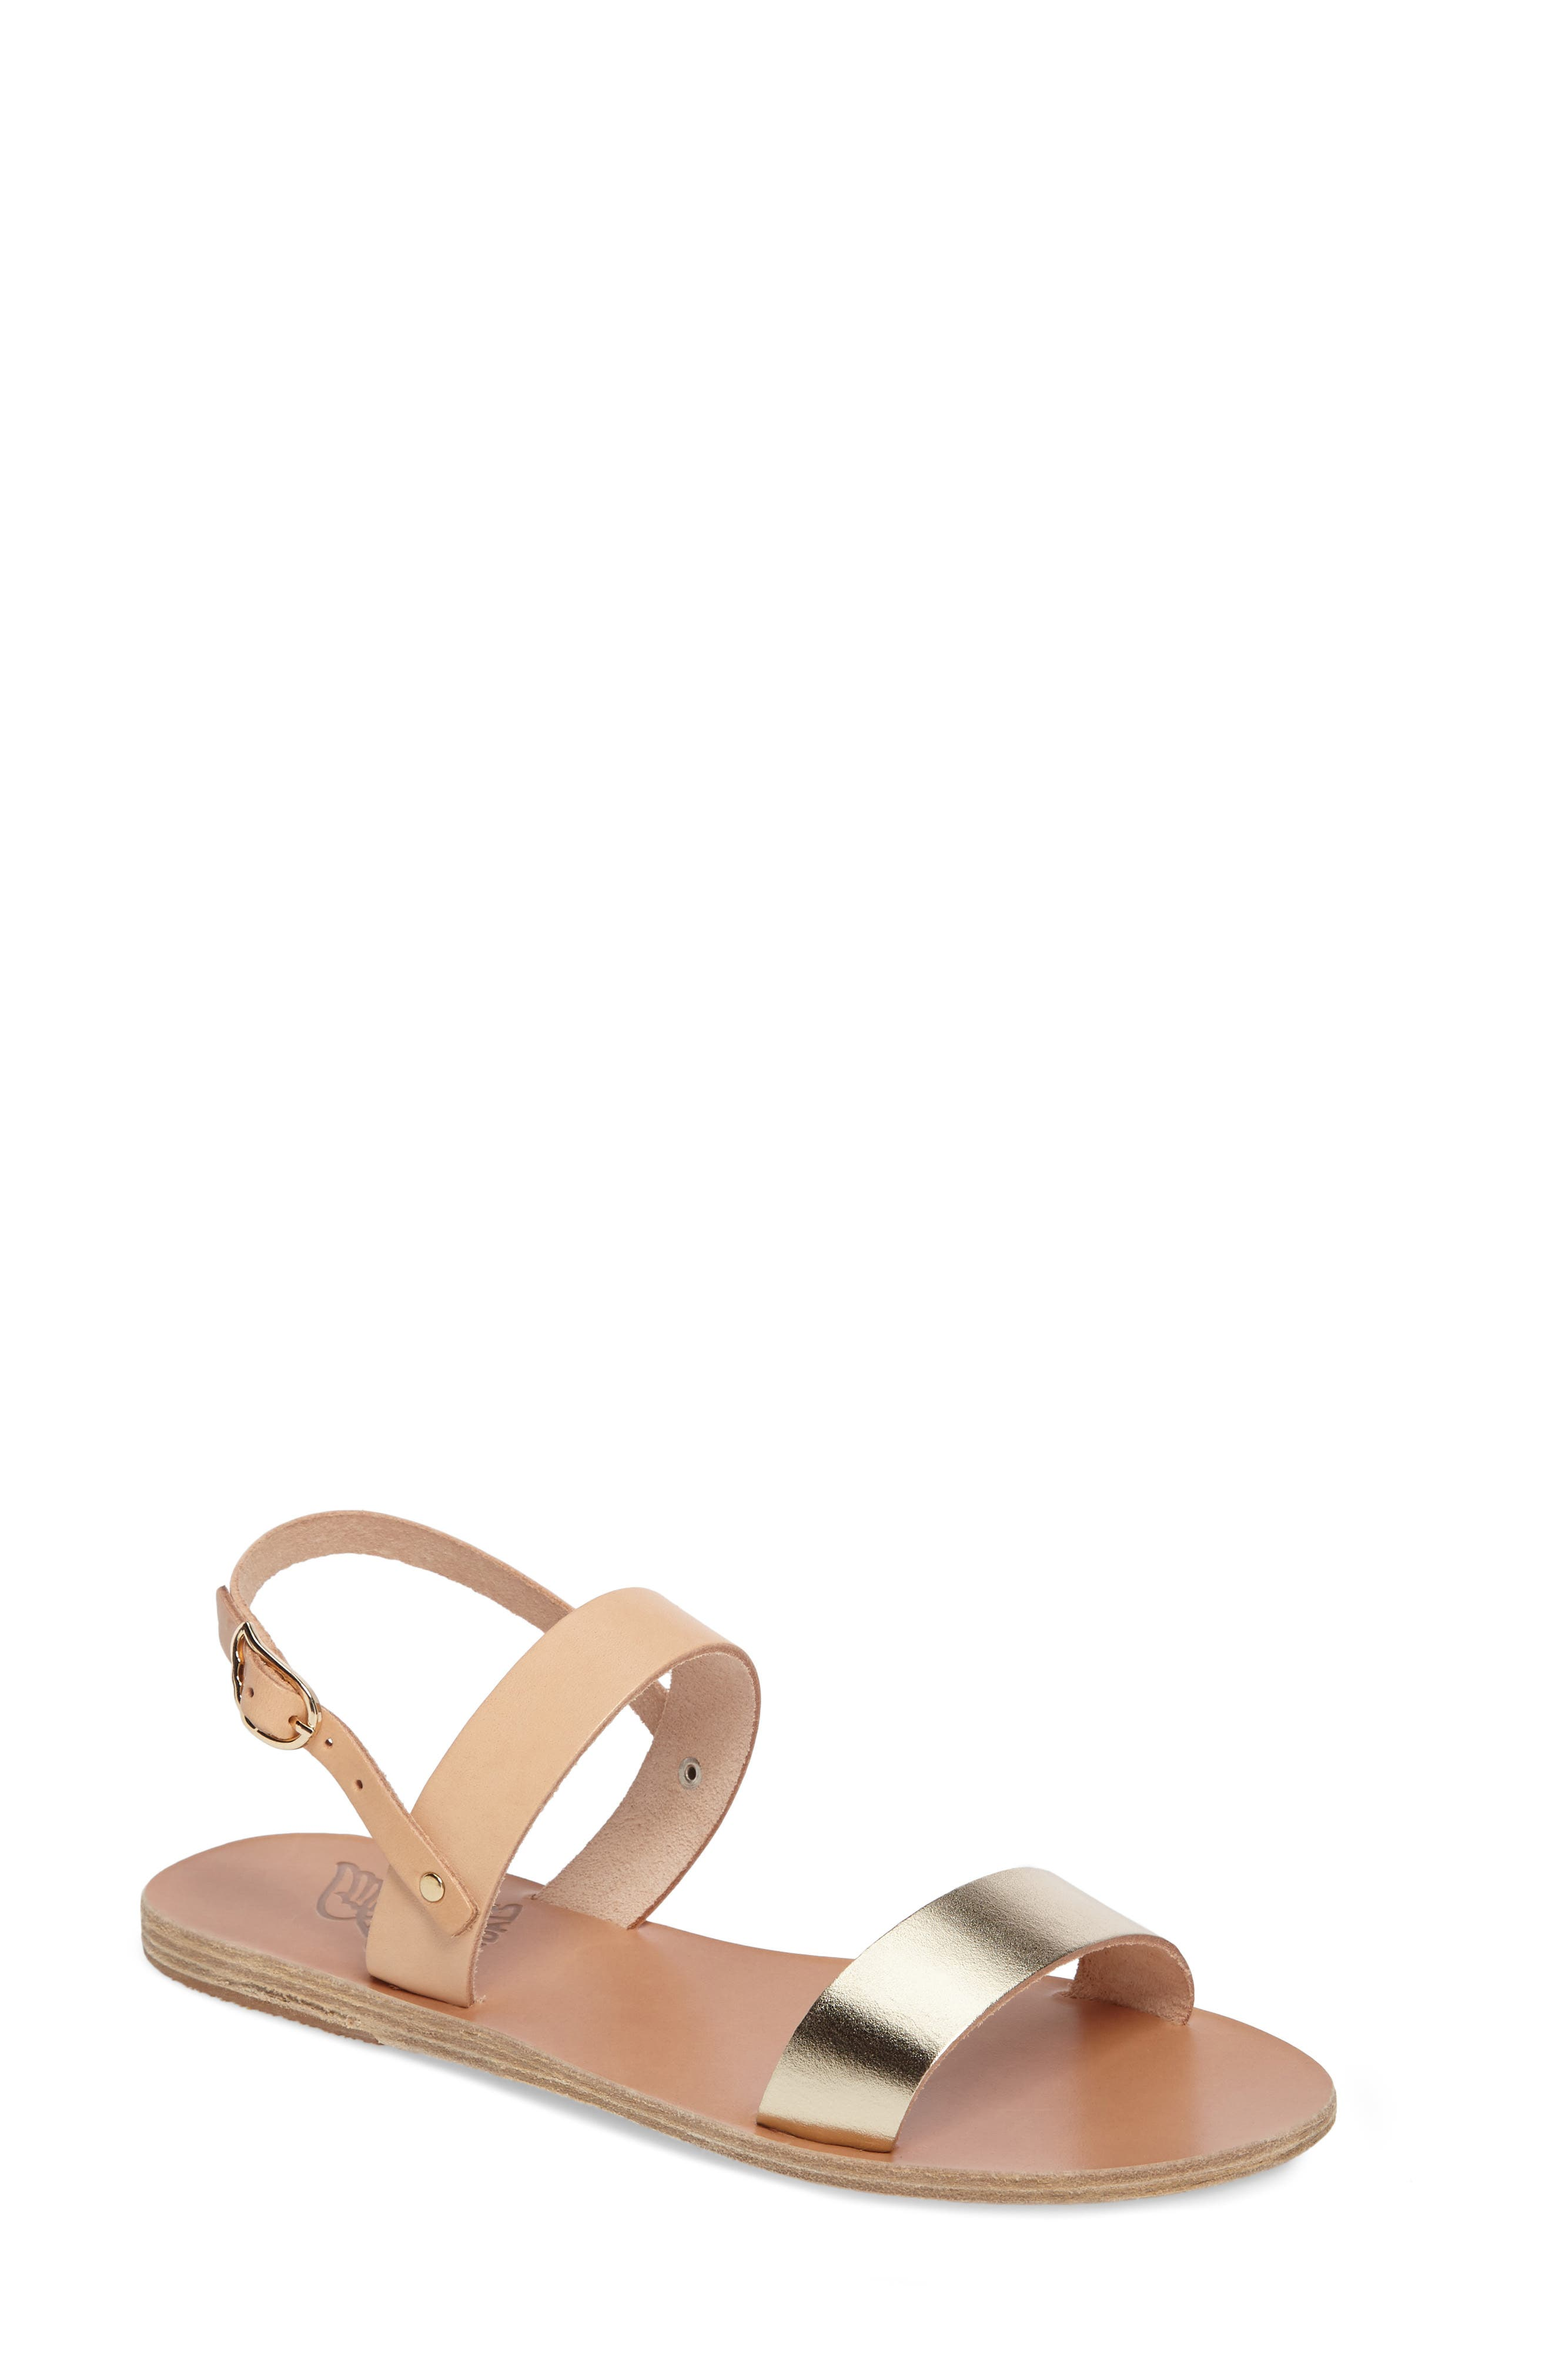 Alternate Image 1 Selected - Ancient Greek Sandals Clio Slingback Sandal (Women)